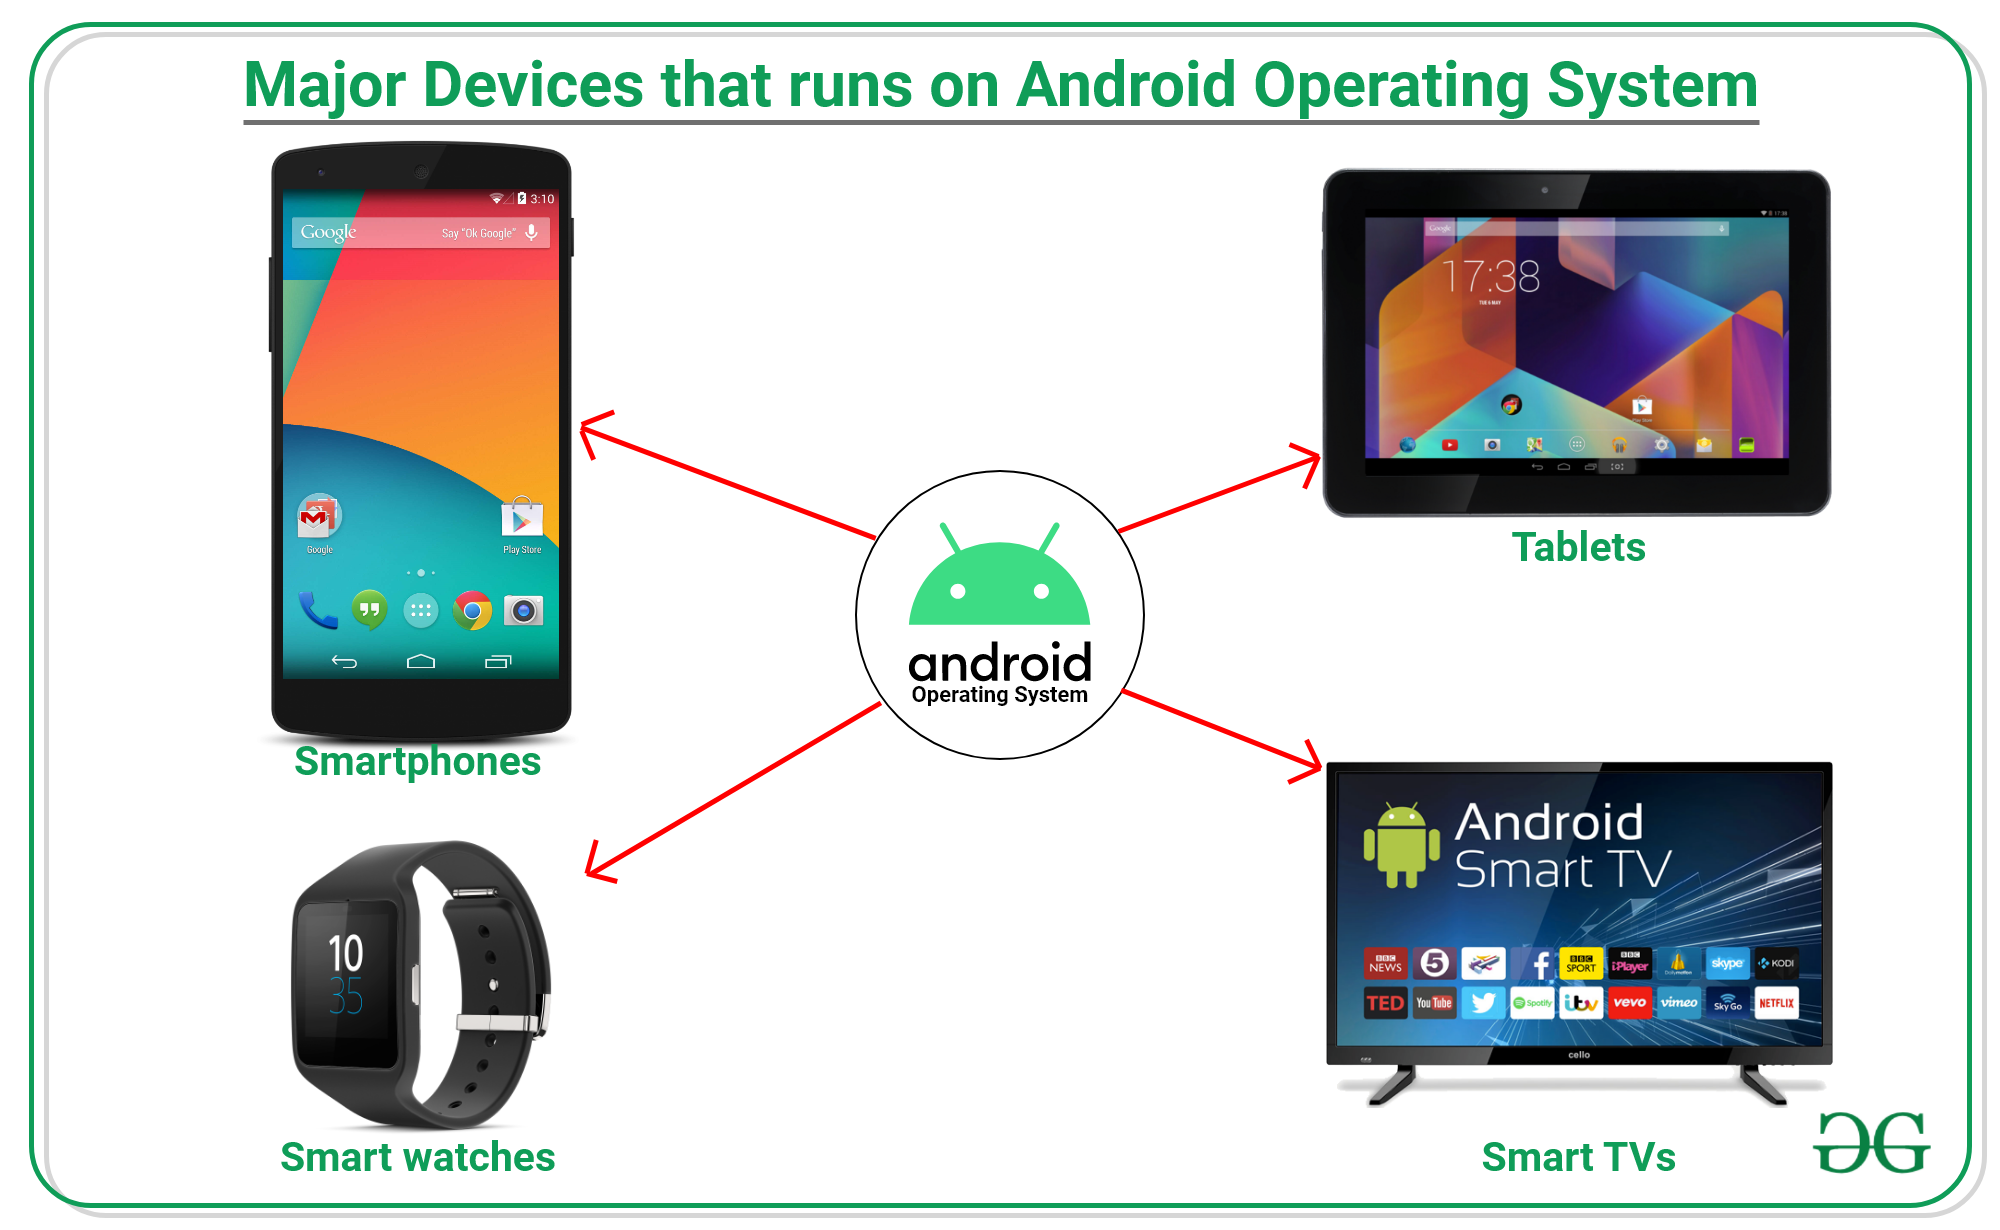 Major Devices that runs on Android OS